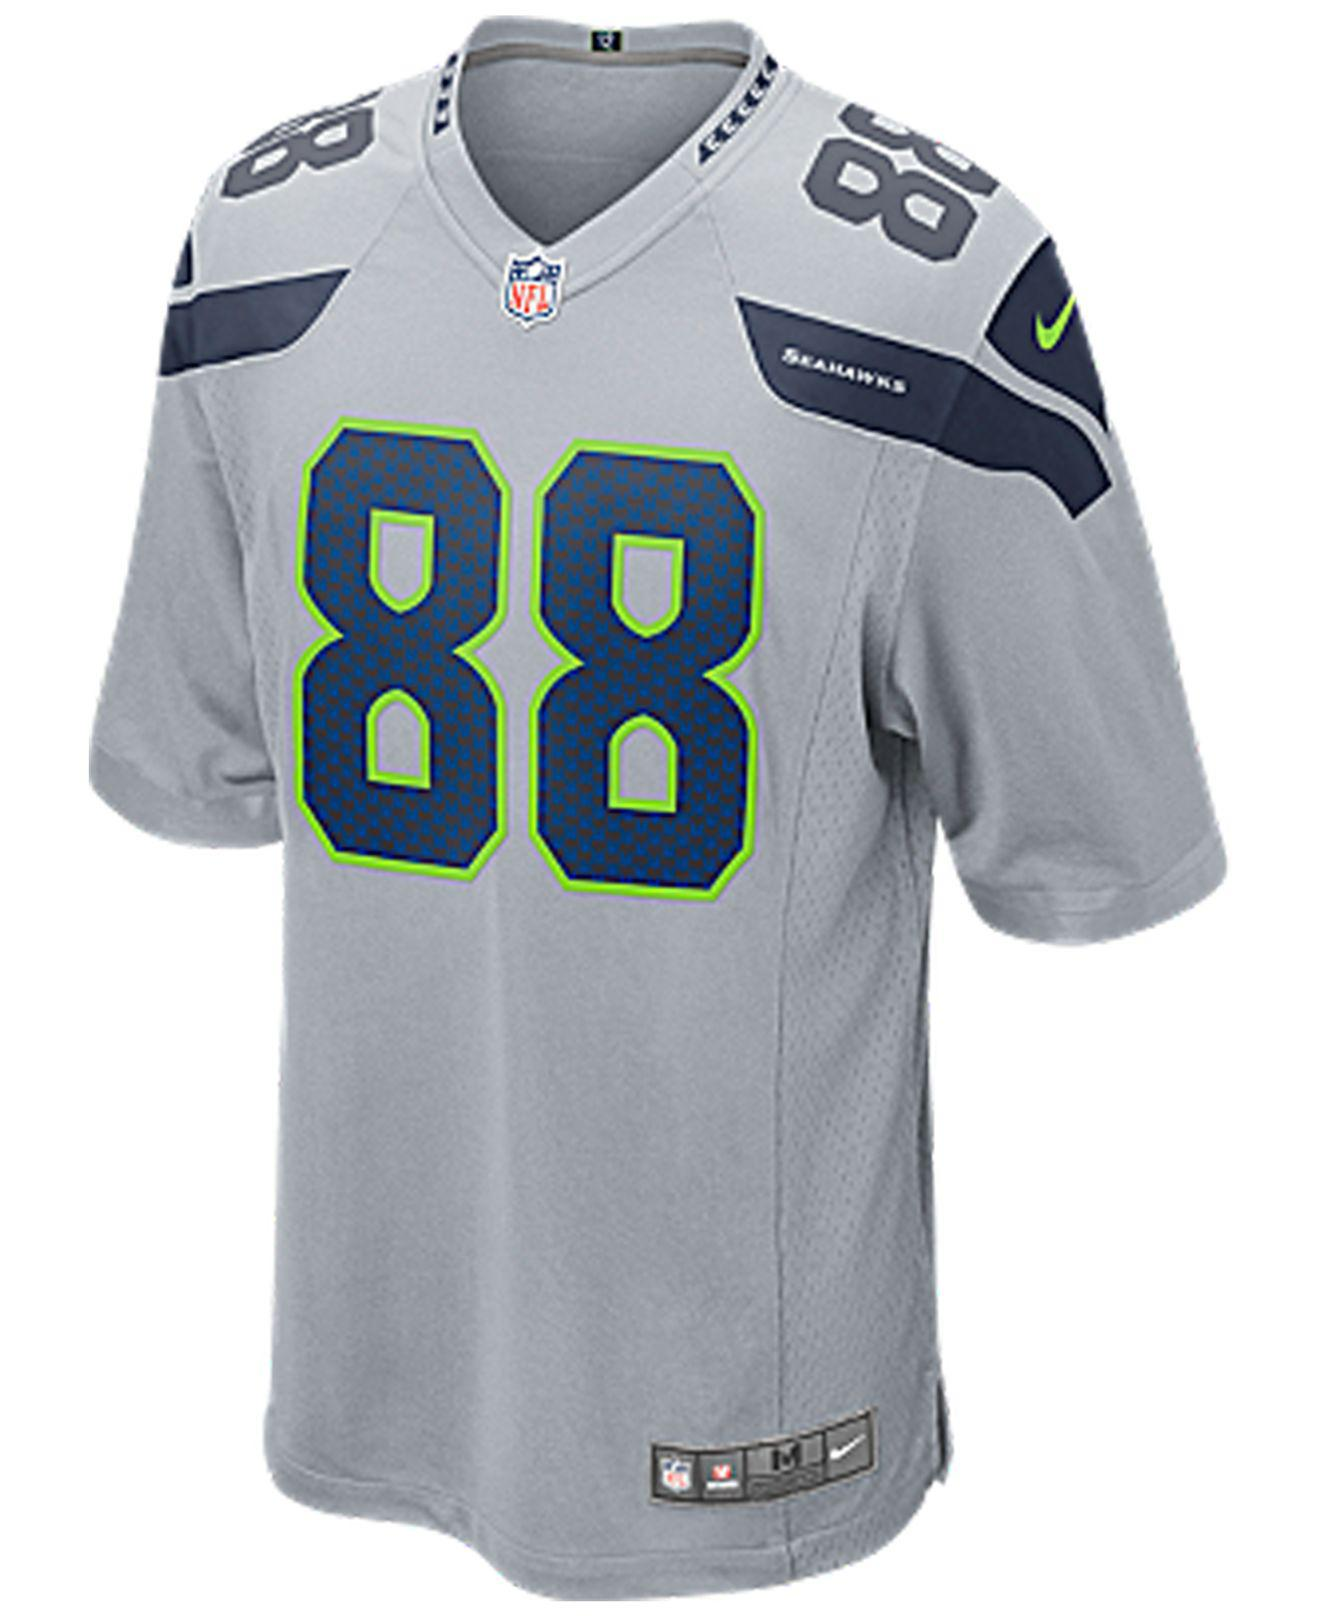 Lyst - Nike Men s Jimmy Graham Seattle Seahawks Game Jersey in Gray for Men 5ab9cf411